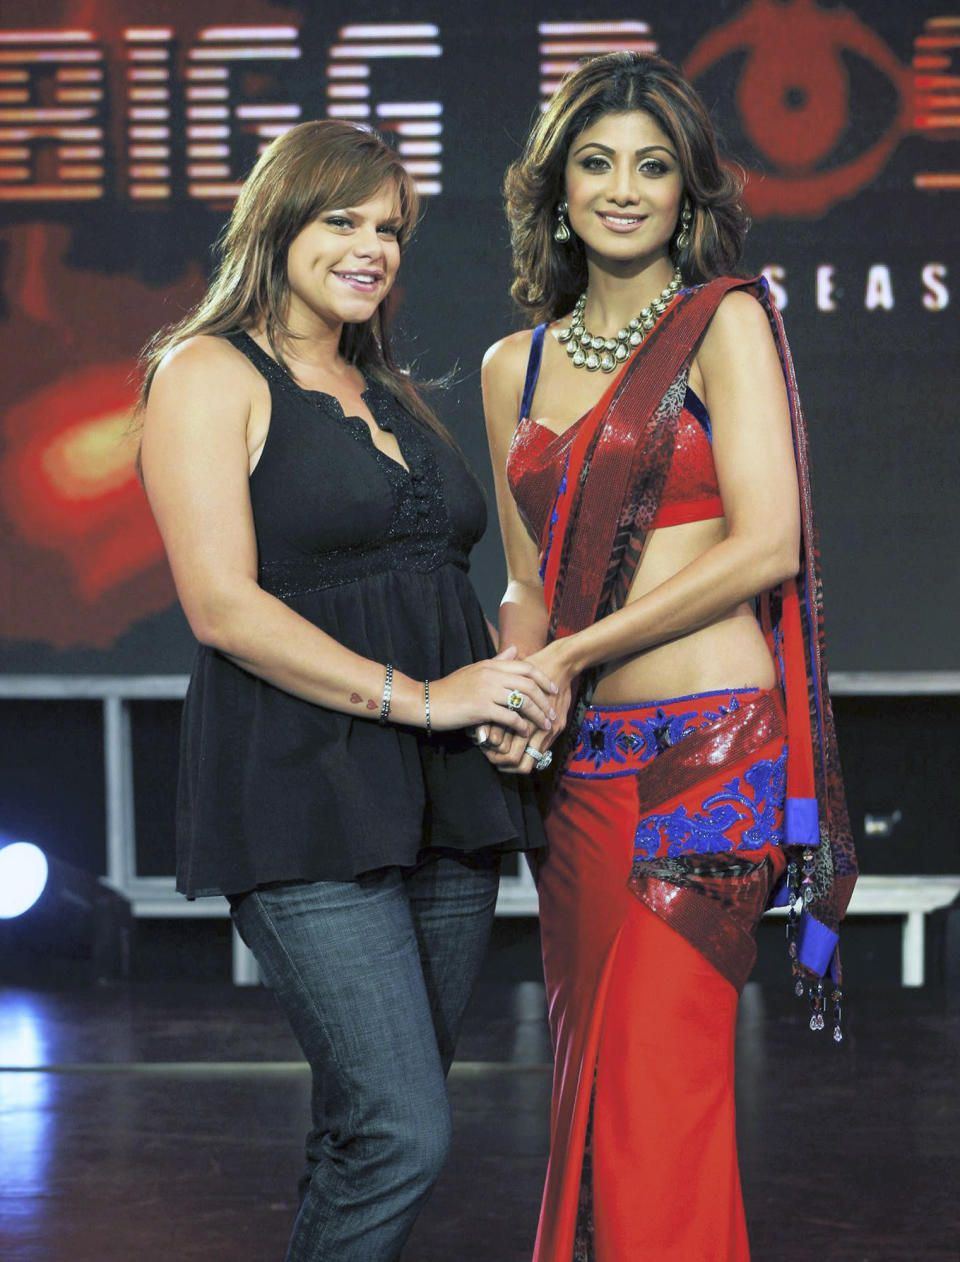 In this Aug.17, 2008 photograph, Indian Bollywood actress Shilpa Shetty, right, is seen with British tabloid celebrity Jade Goody, on the set of the reality show Big Boss, in Mumbai, India. Goody has been diagnosed with cancer and will leave India where she is filming a reality show to receive treatment in London, television officials said Tuesday, Aug. 19, 2008. (AP Photo)